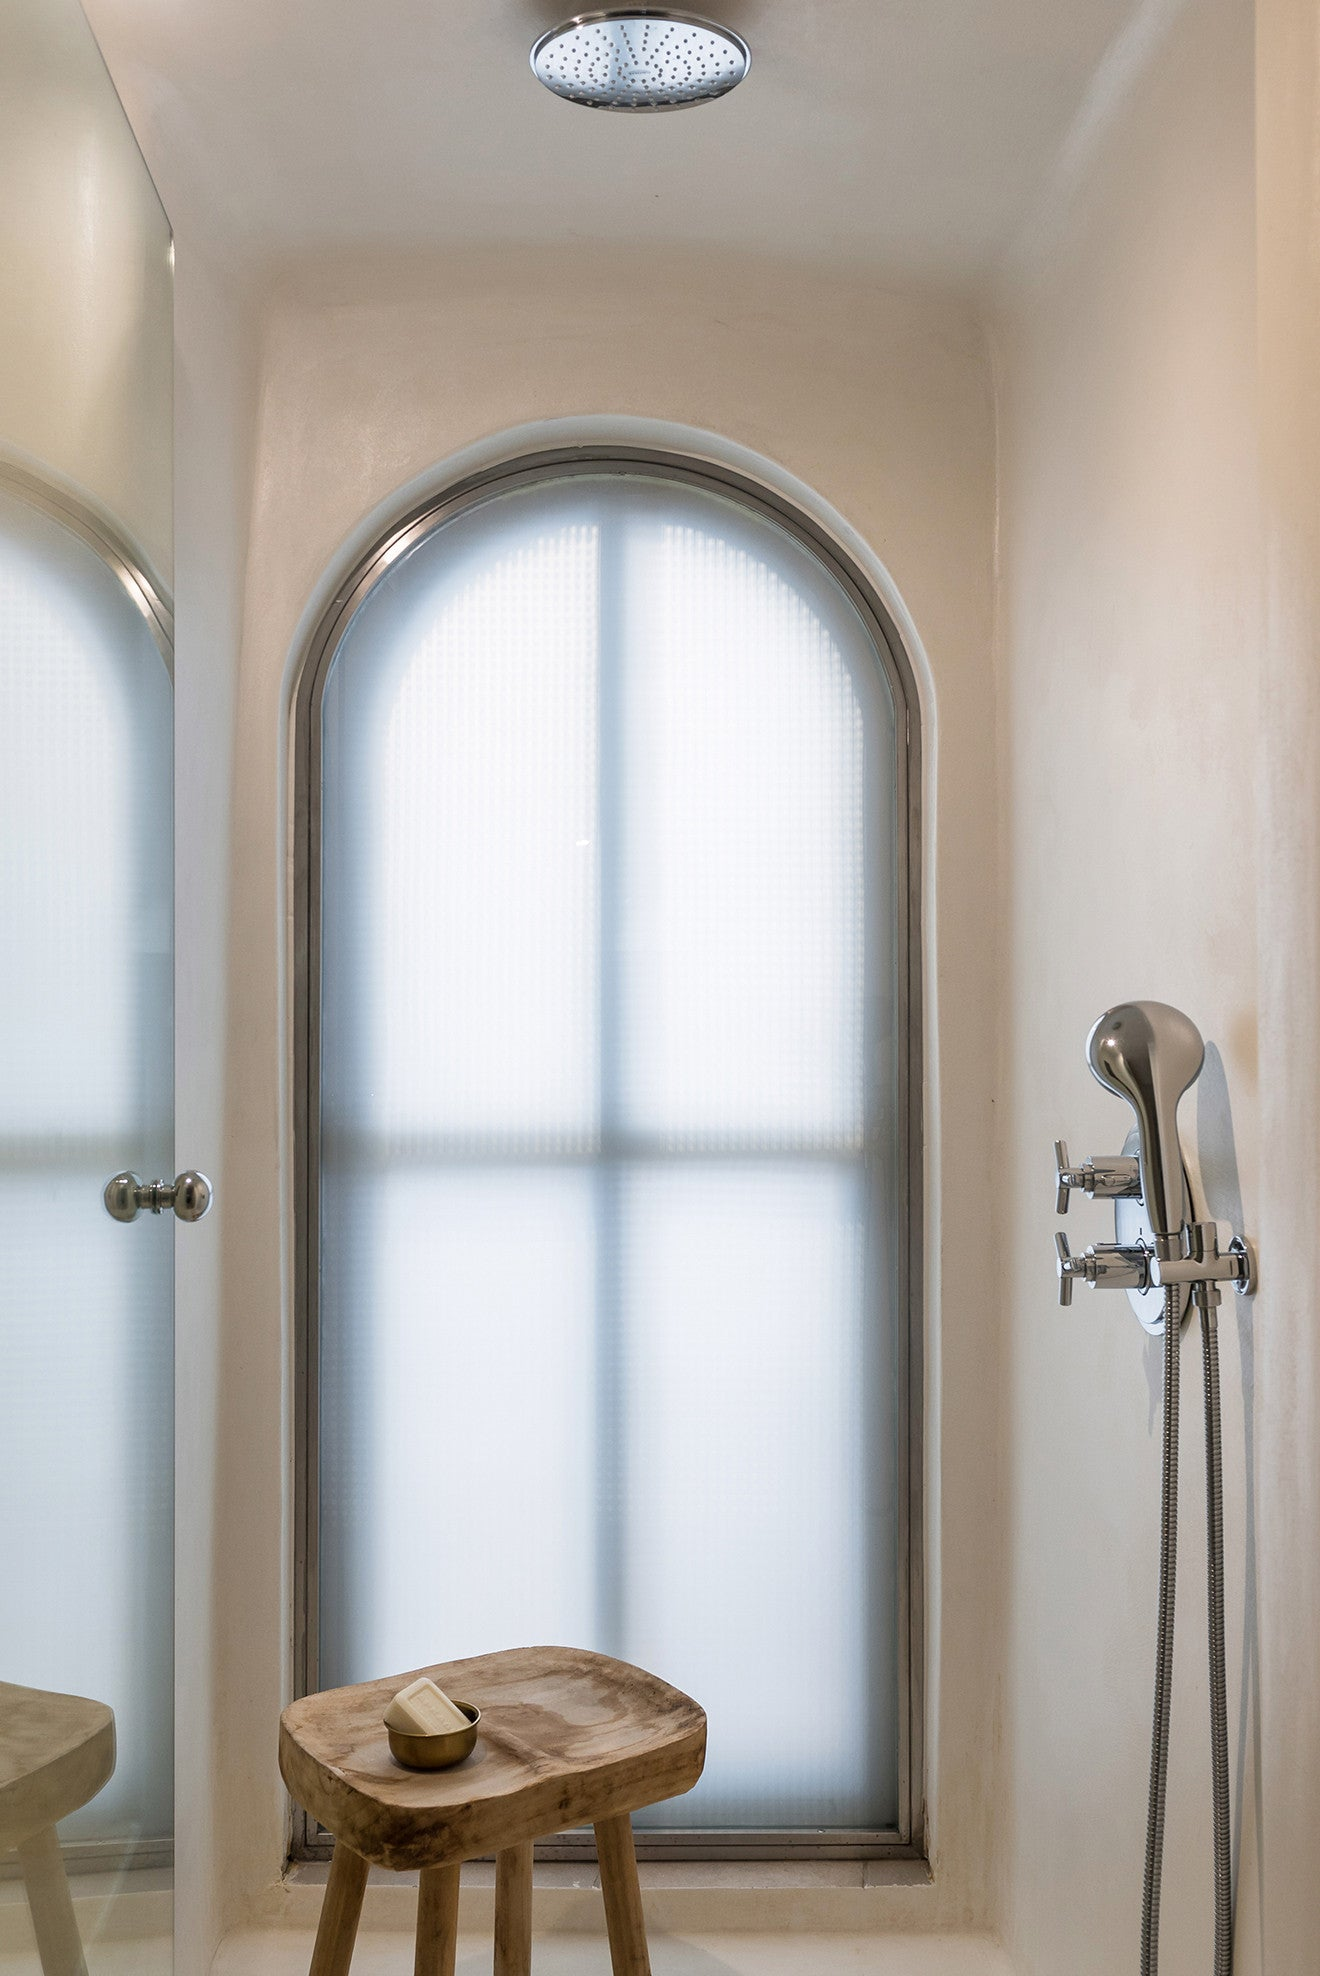 Shower room with frosted arched window - Laboratorium designs the beautiful Porto Fira Suites in Santorini